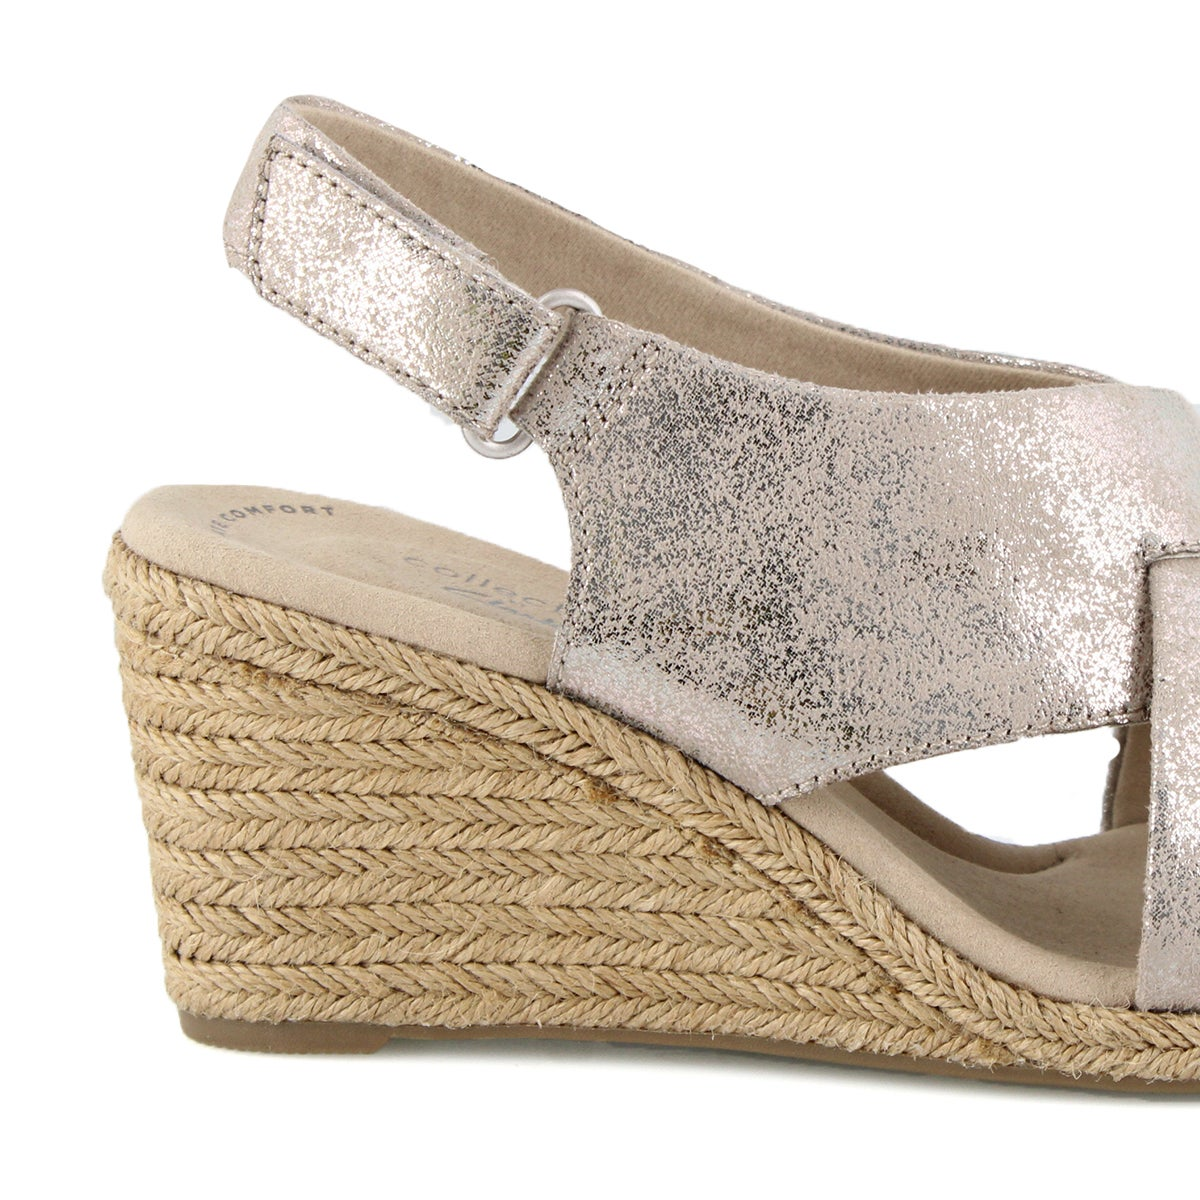 Lds Lafley Alaine pewter wedge sandal